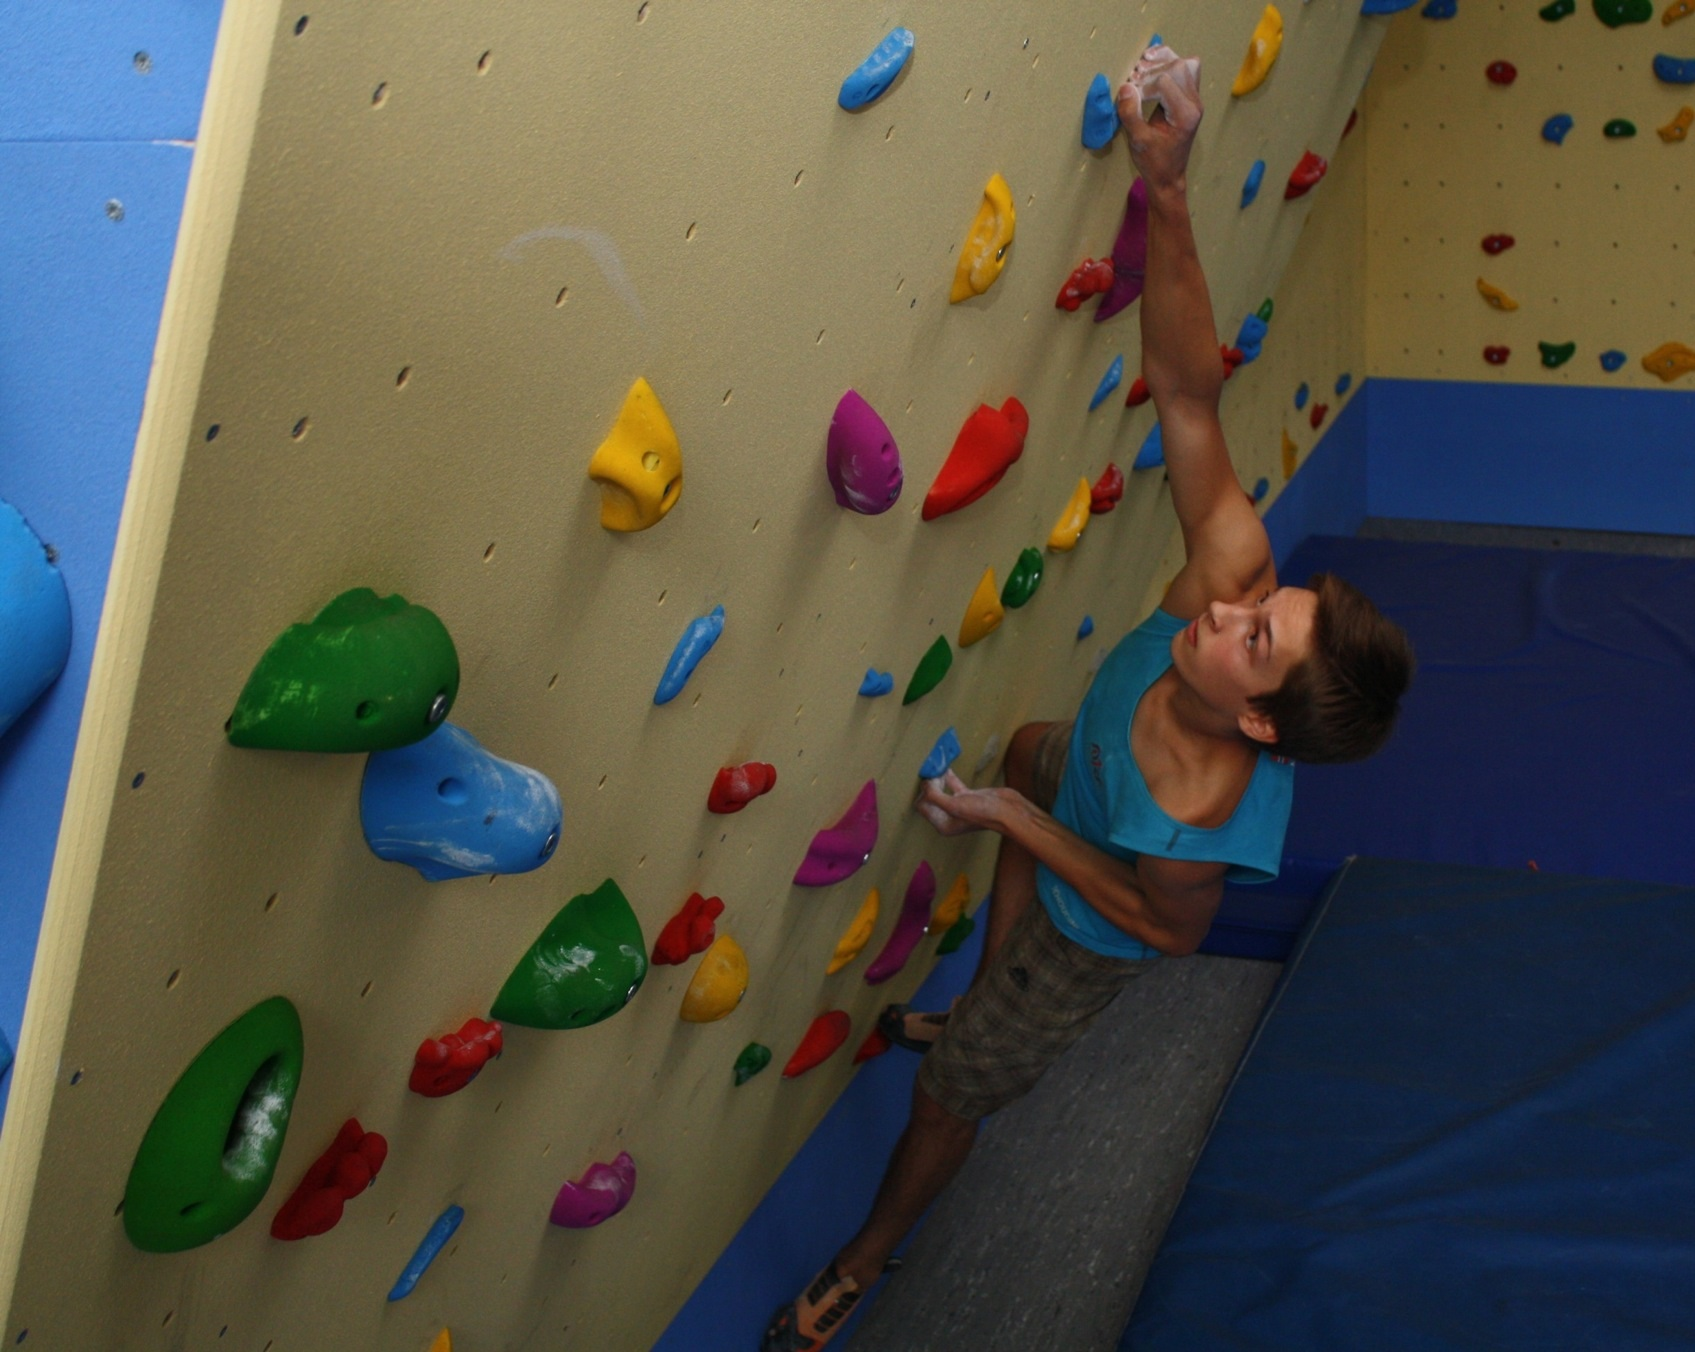 On the new climbing wall - Pic by Marita Bünger